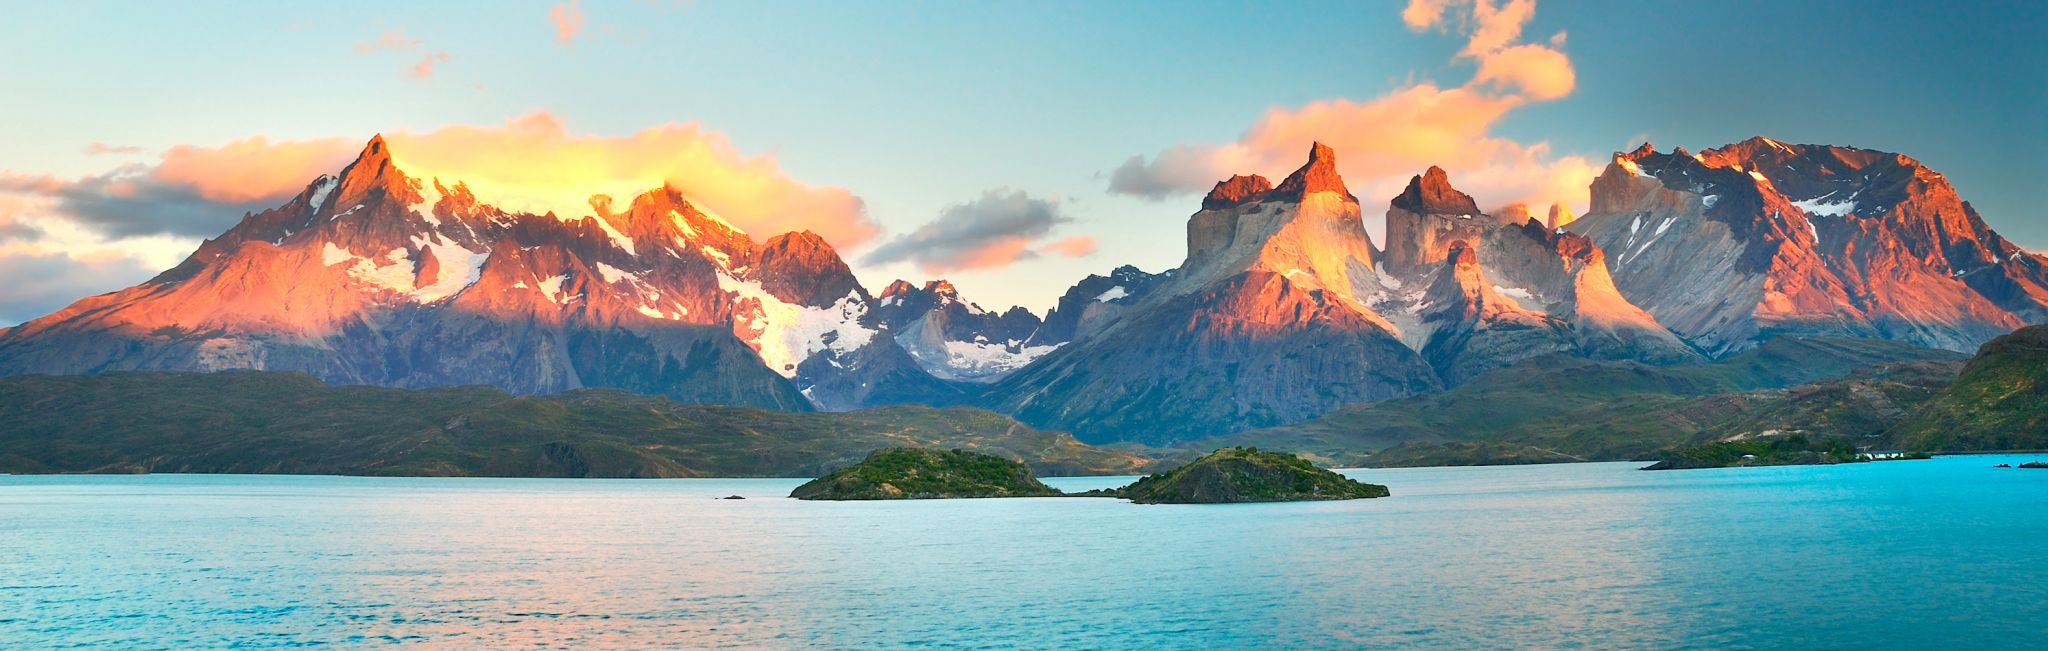 Patagonia Tours Vacations Luxury Travel Packages And Agents 2018 2019